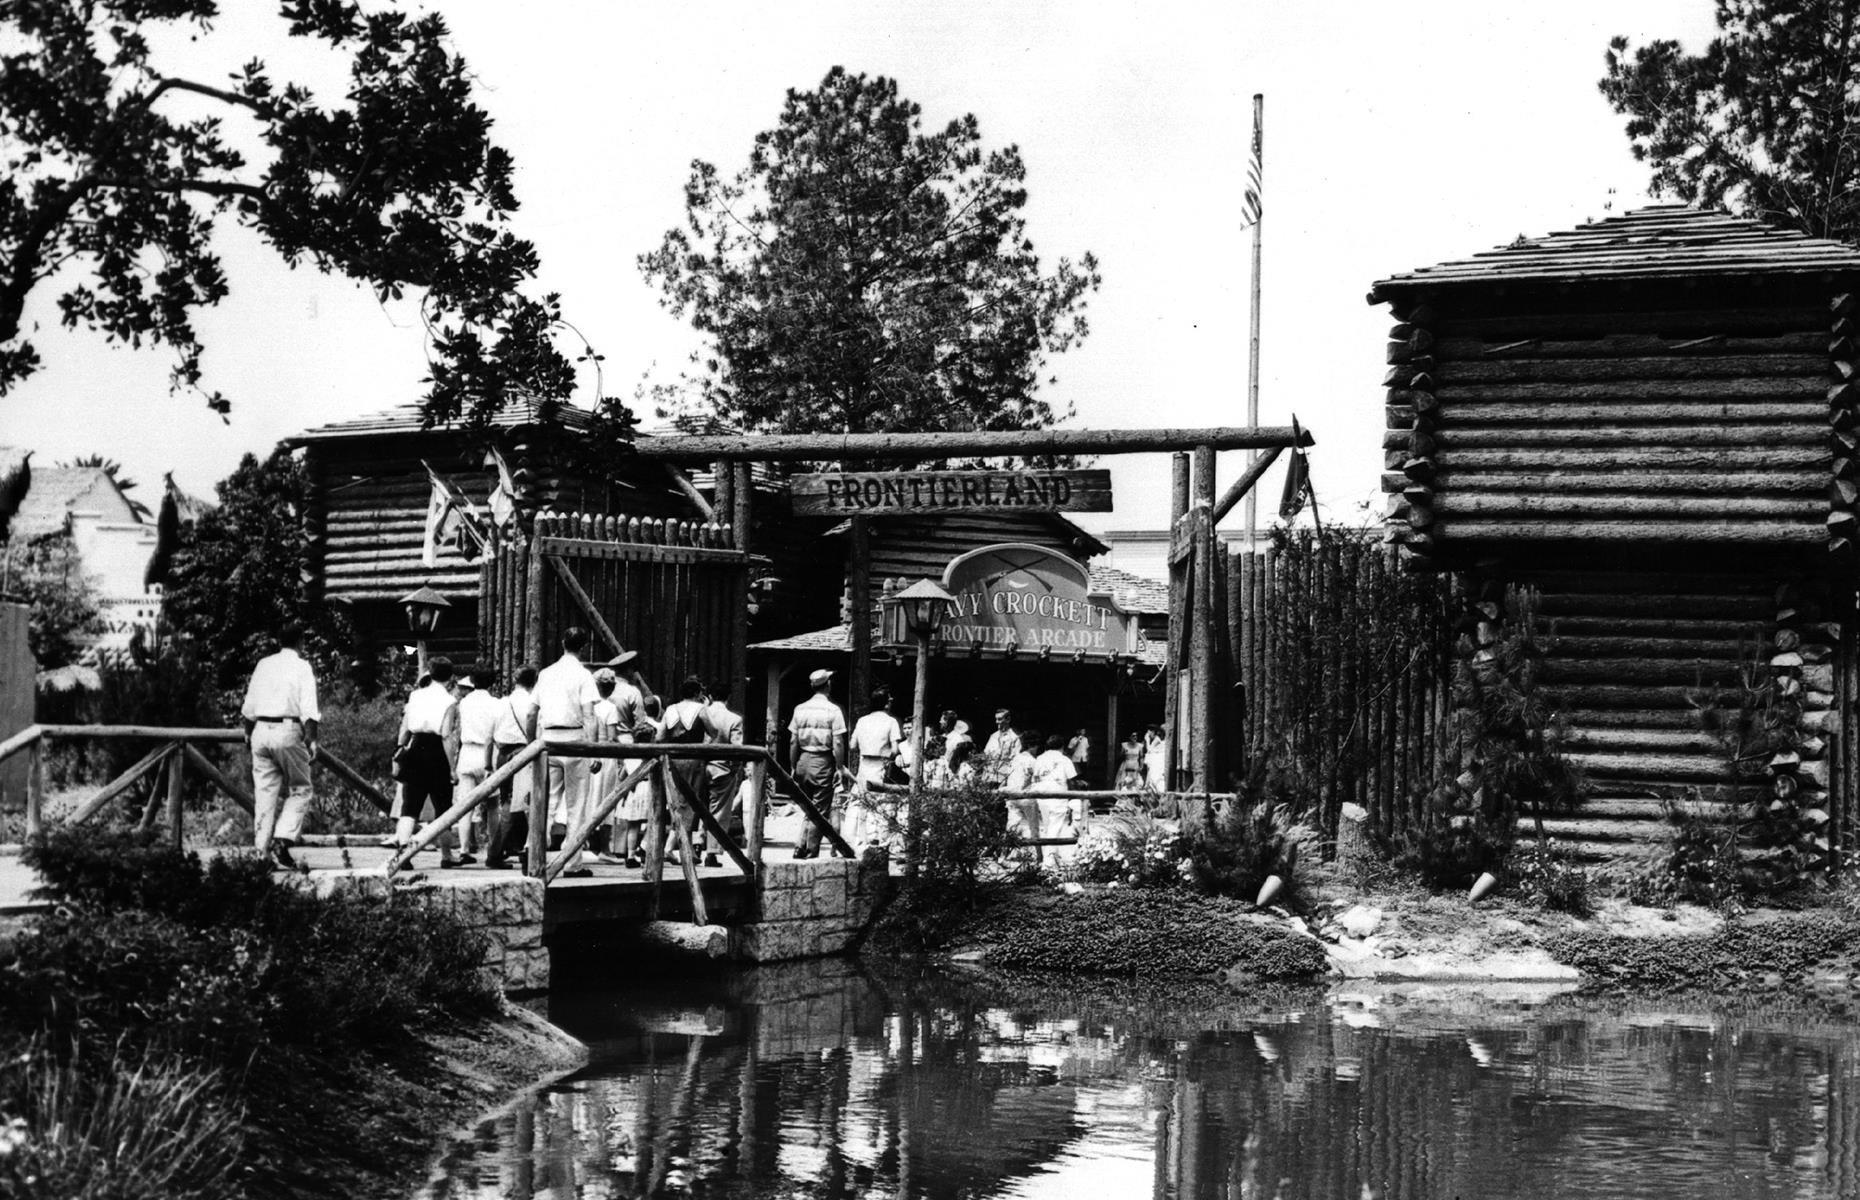 Slide 32 of 35: Another of Disneyland's enduring attractions is Frontierland, an Old West-themed land that has been part of the park from the very beginning. Here tourists are seen crossing the waters into a land of saloons, cowboys, pirates and pioneers, with early attractions including the Mark Twain Riverboat, which still plows the park's waters today. This photograph was snapped around 1955, not long after the park's opening date.